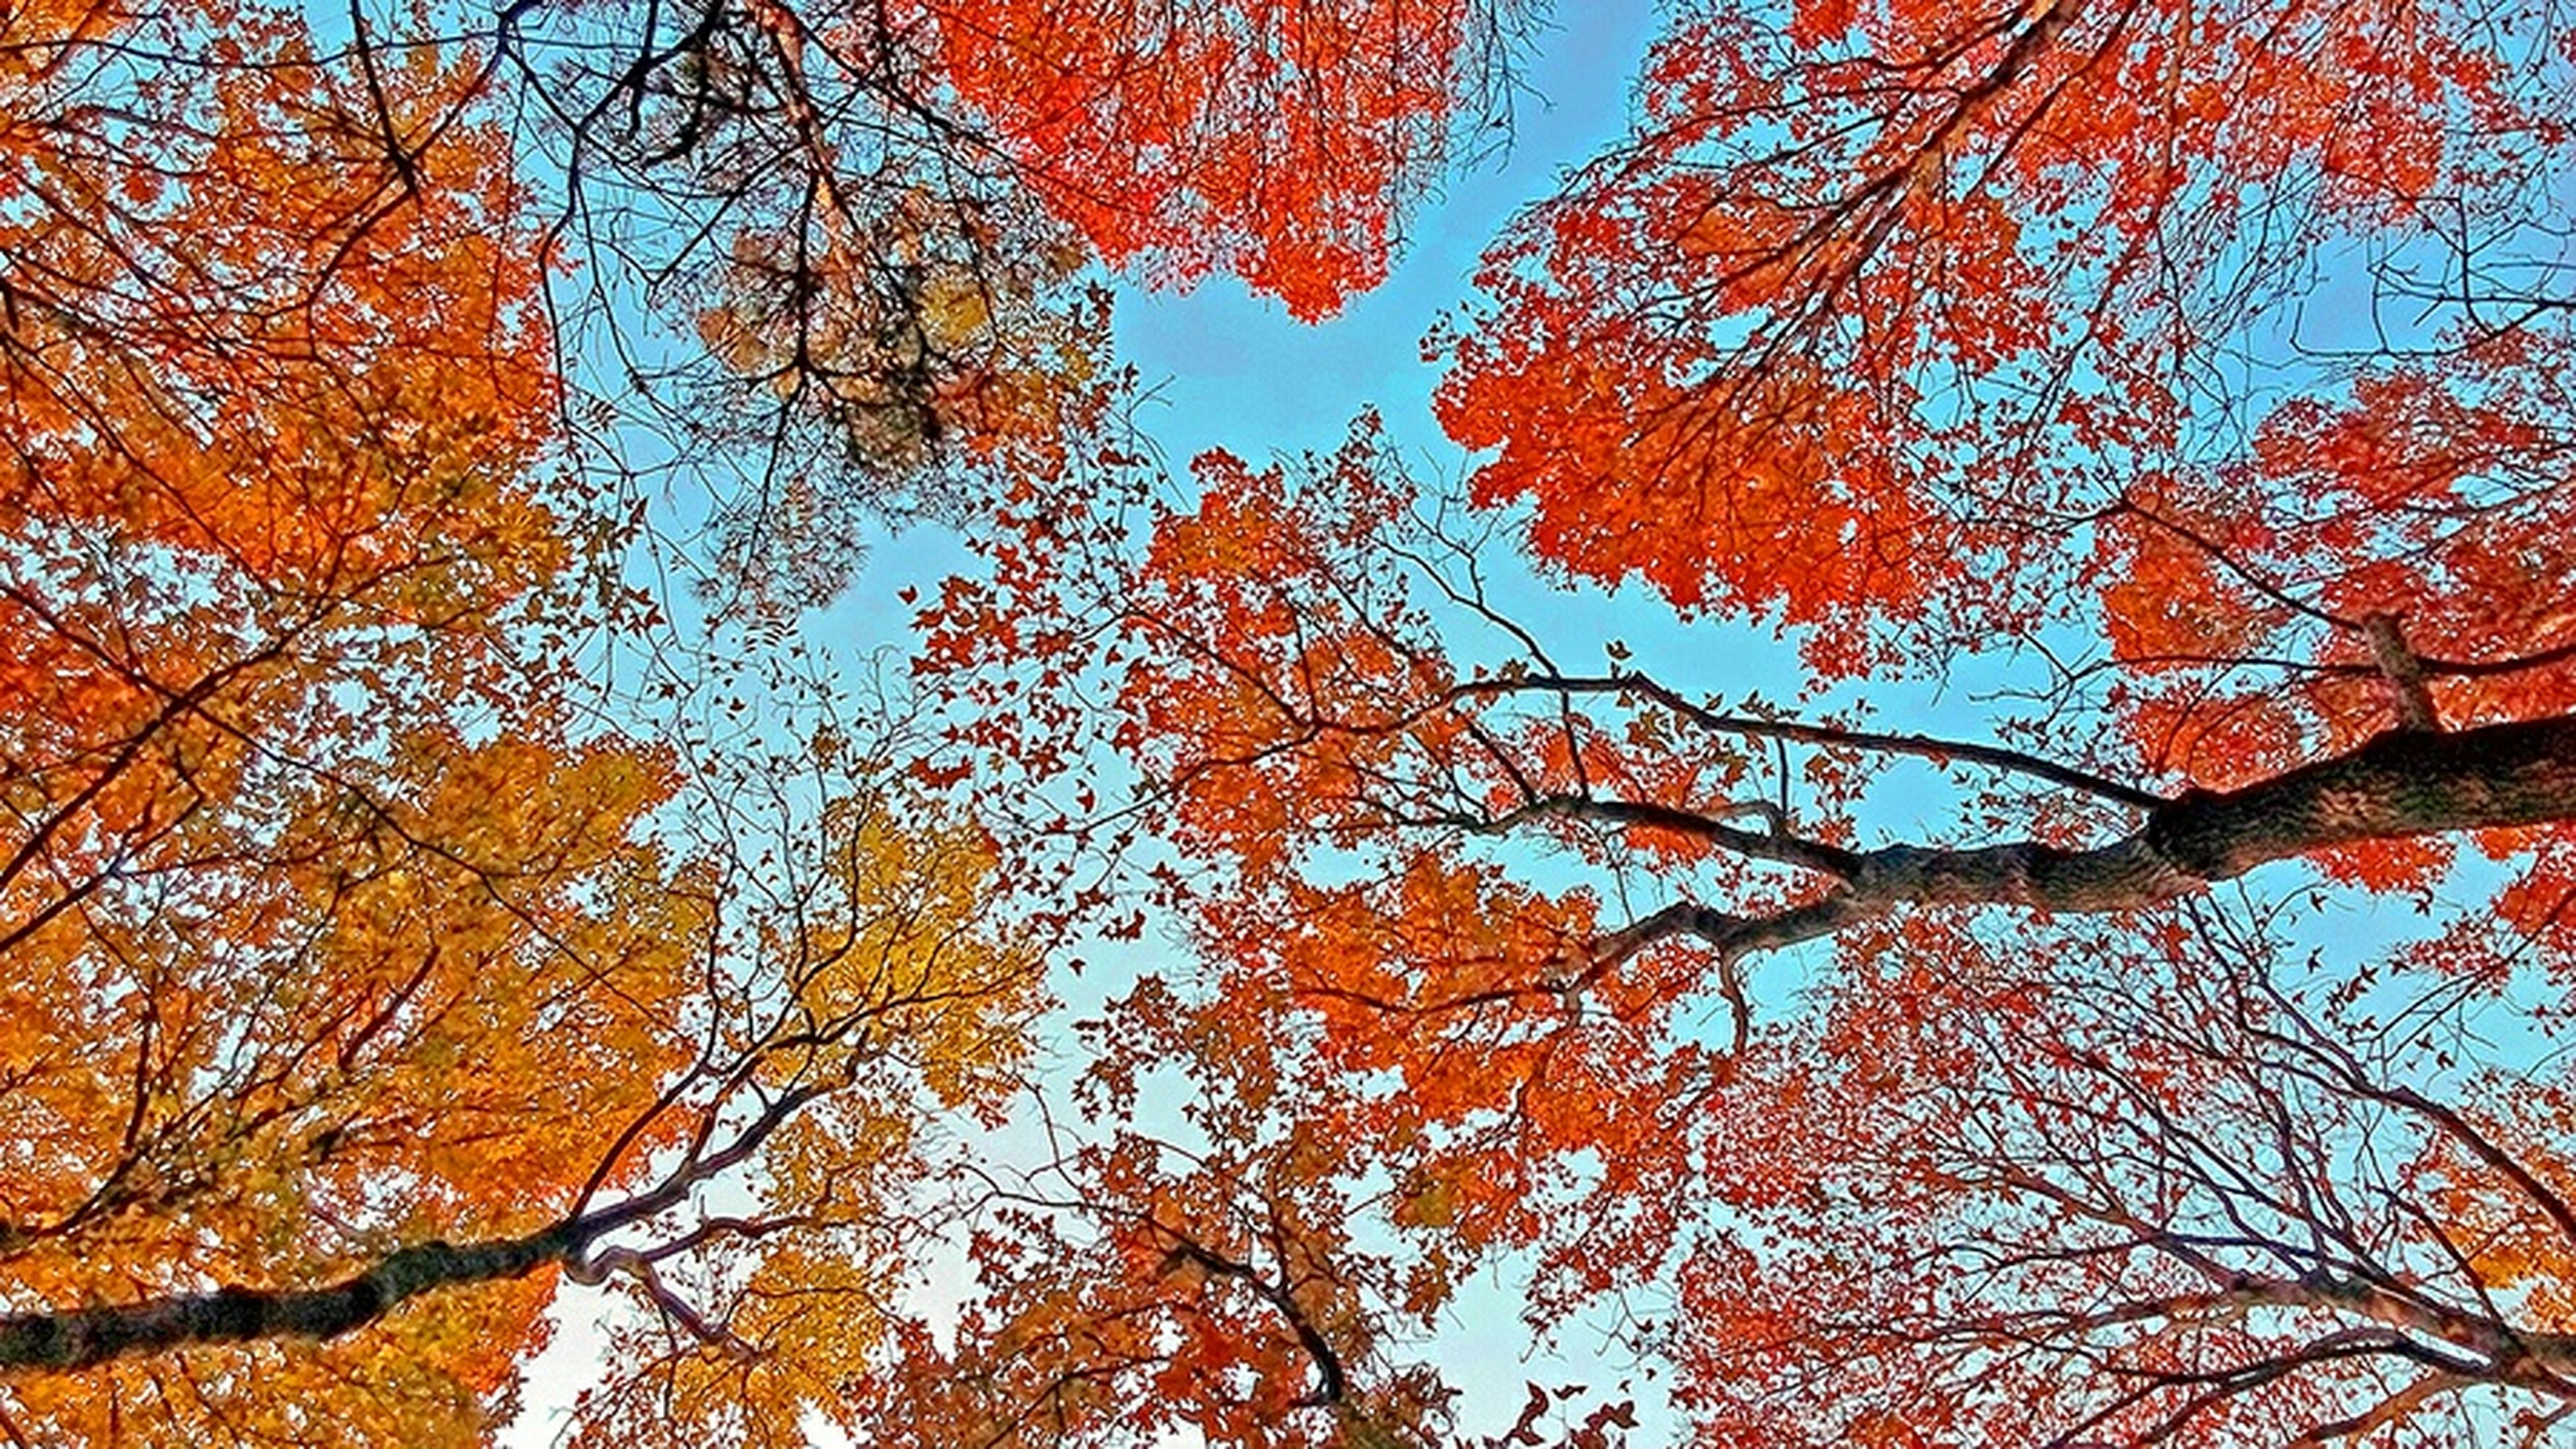 tree, autumn, change, branch, low angle view, season, orange color, nature, growth, beauty in nature, tranquility, scenics, day, yellow, tree trunk, sky, blue, no people, outdoors, backgrounds